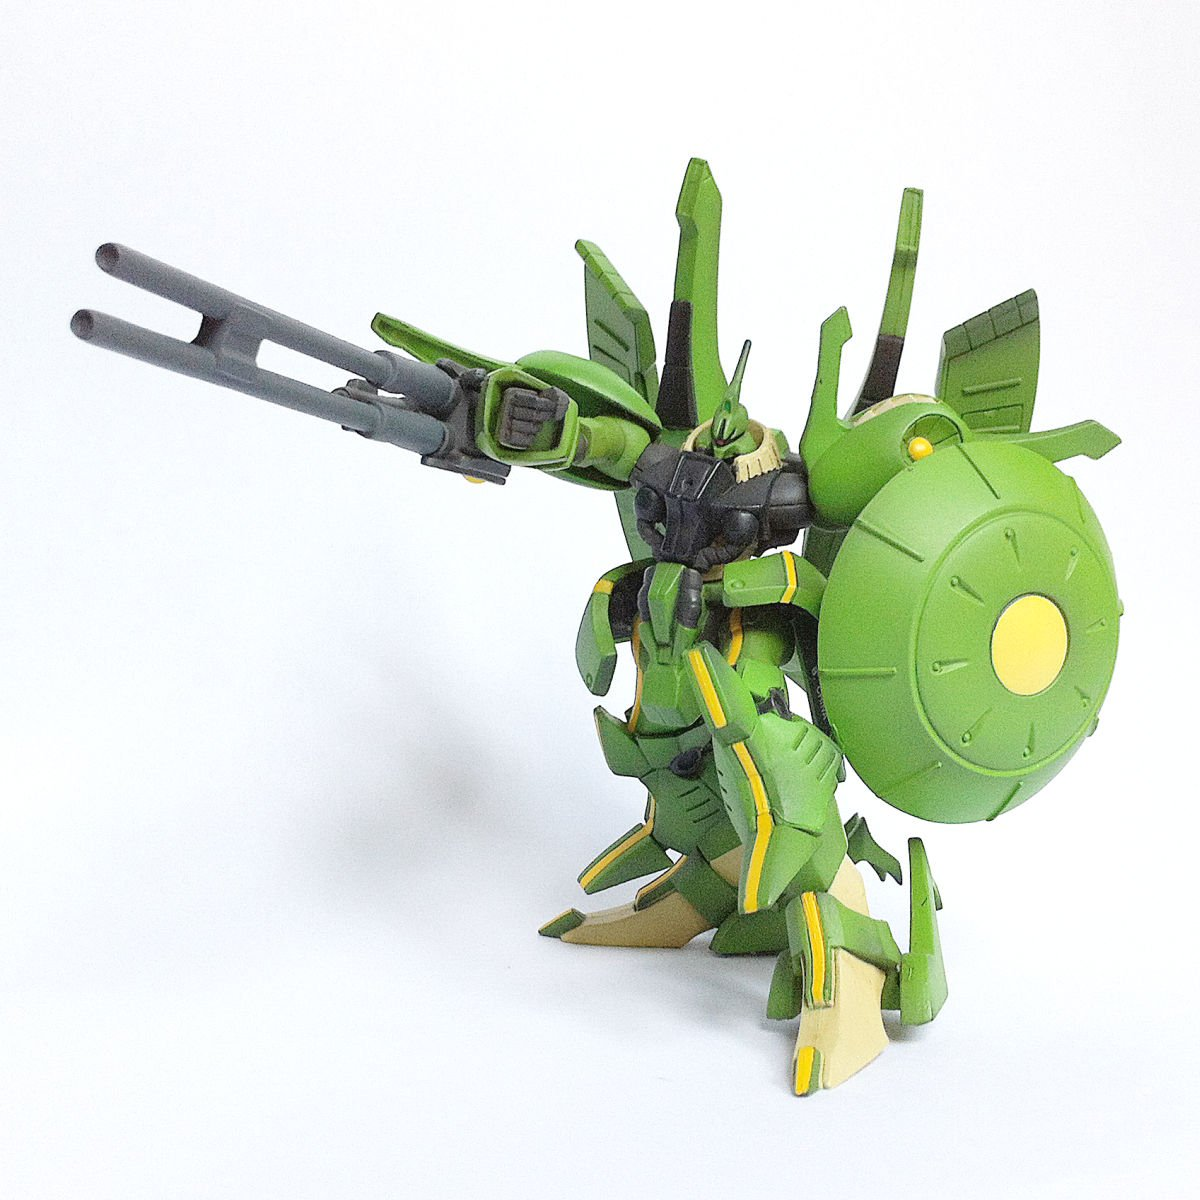 PMX-001 Palace Athene from HG Gundam MS Selection by Bandai